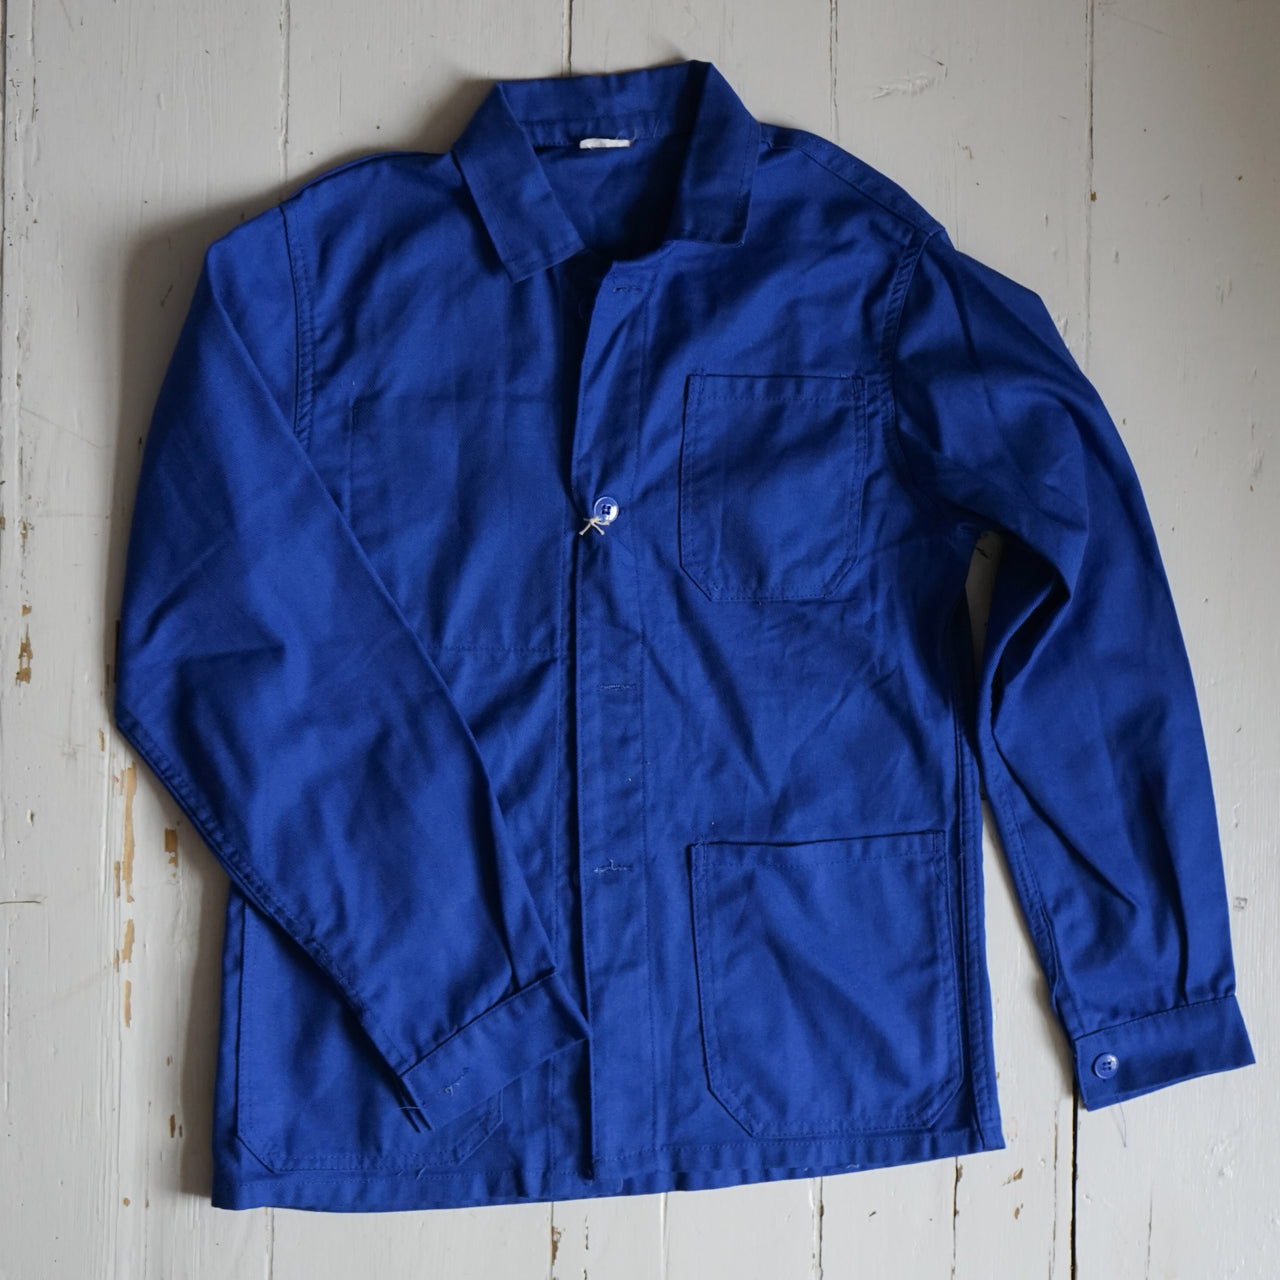 Vintage French Workwear Jacket - Extra Small